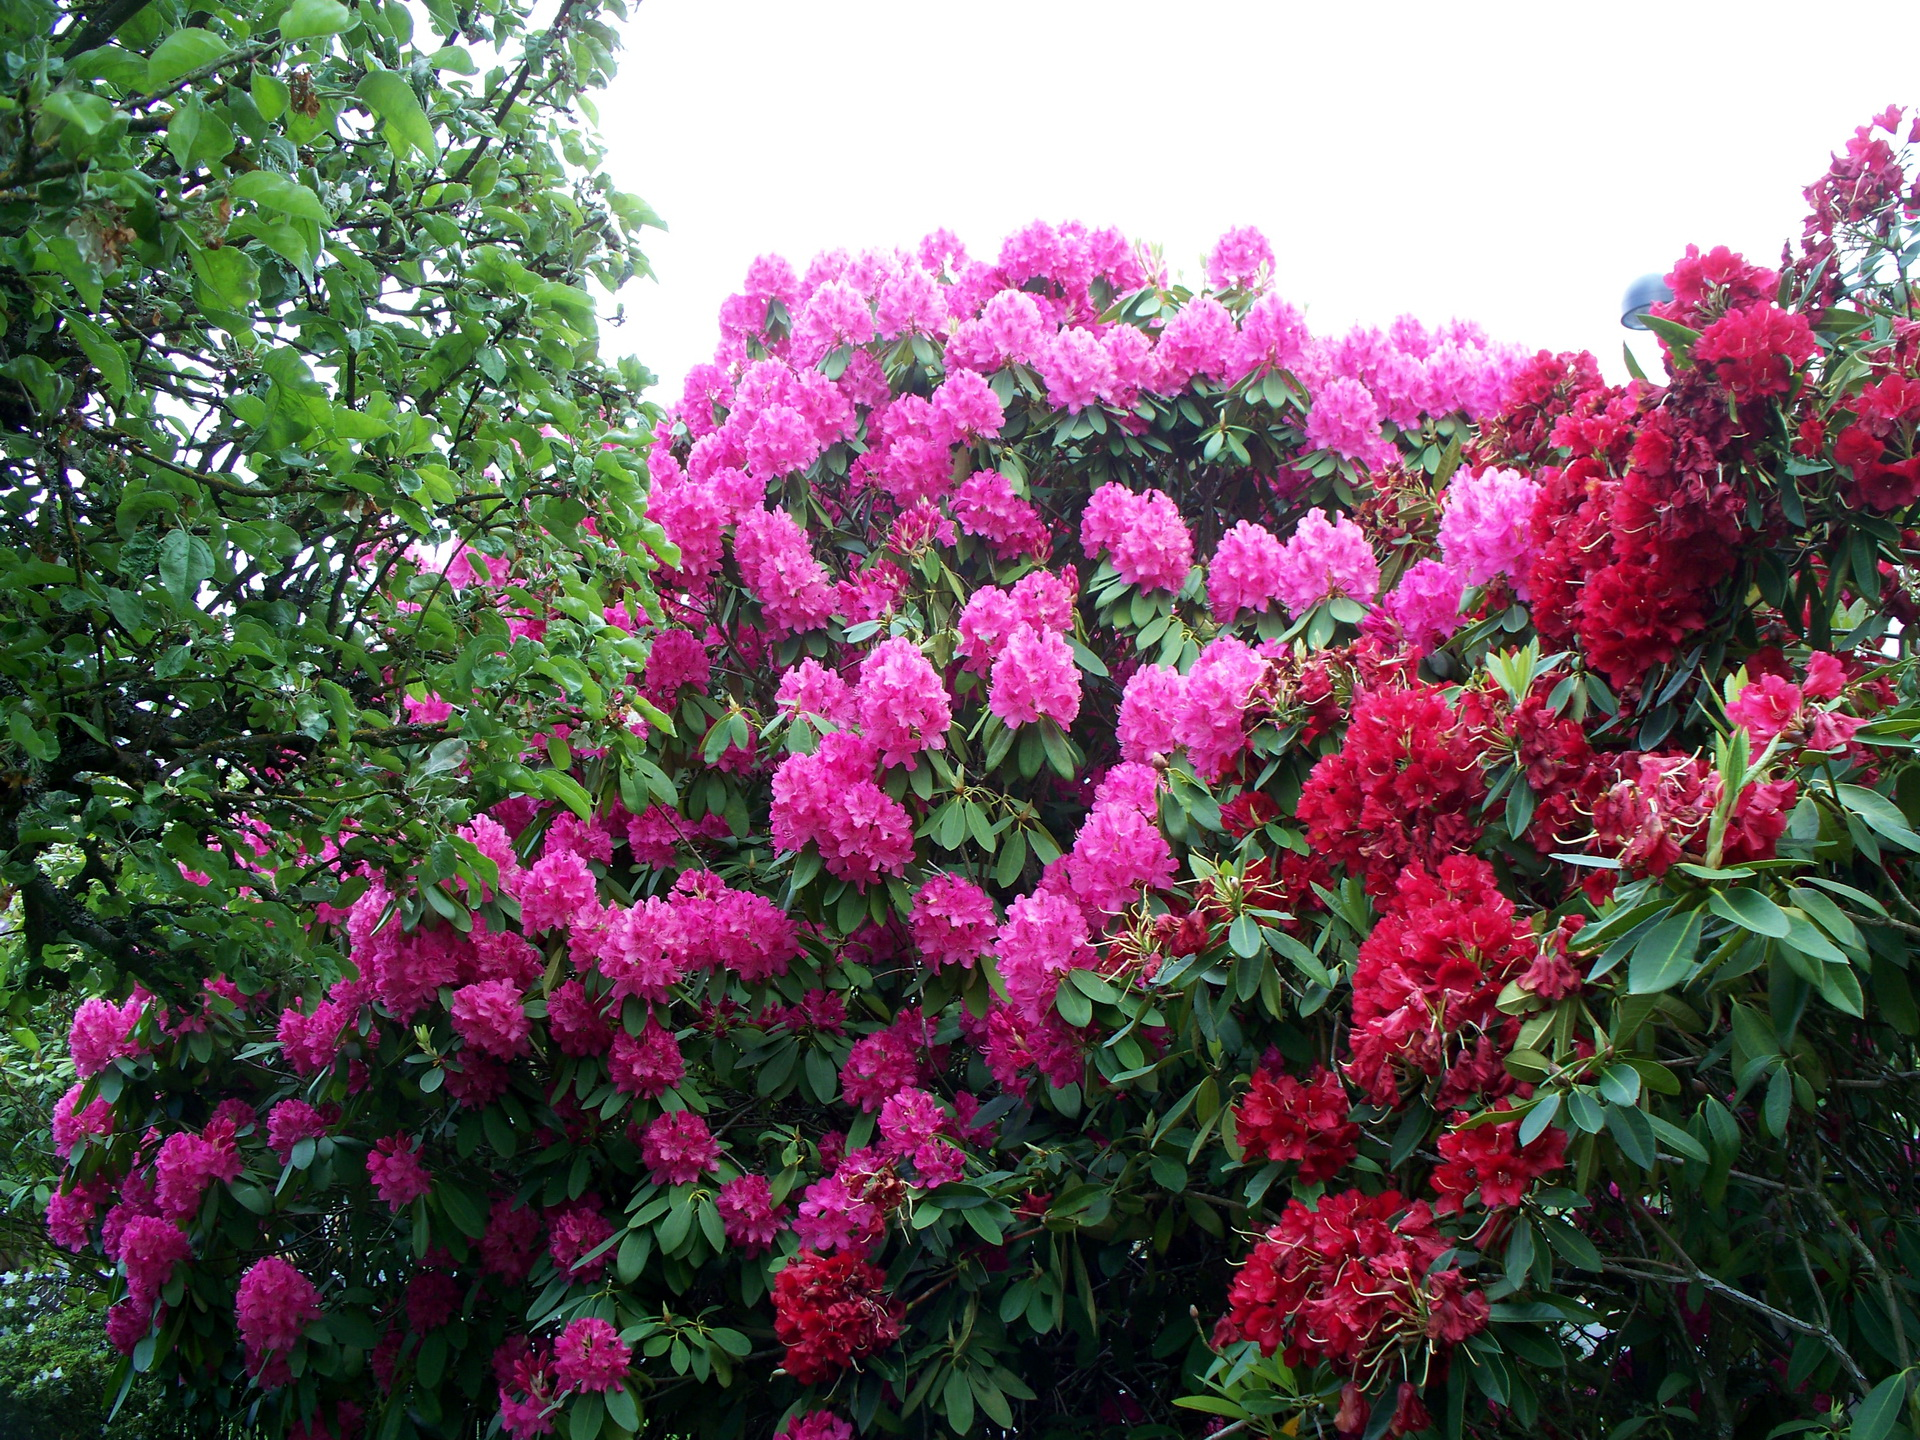 Rhododendron in the garden.